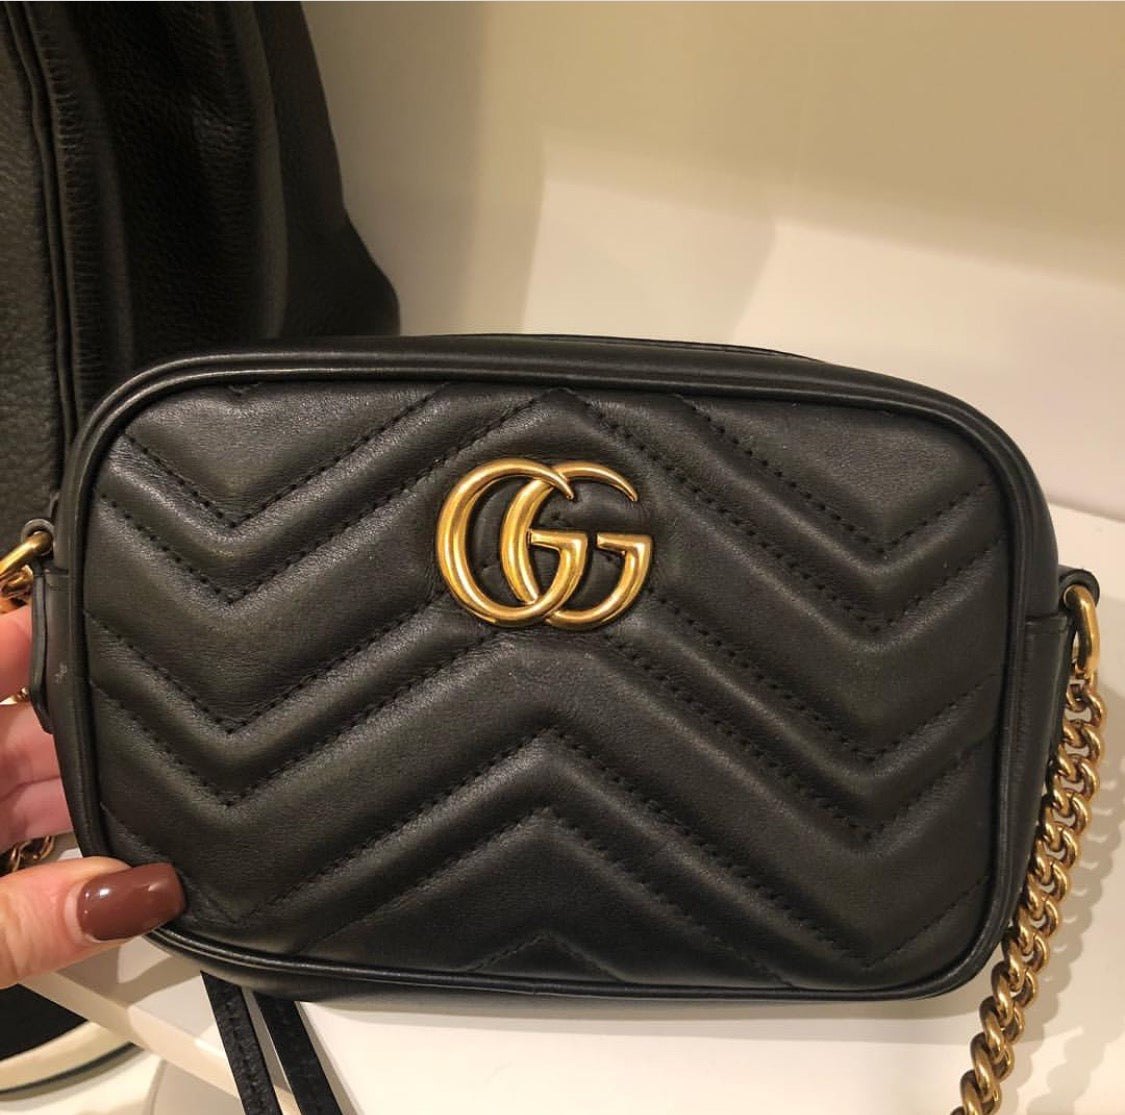 6fed7371748 Gucci mini marmont bag – Beccas Bags Boutique